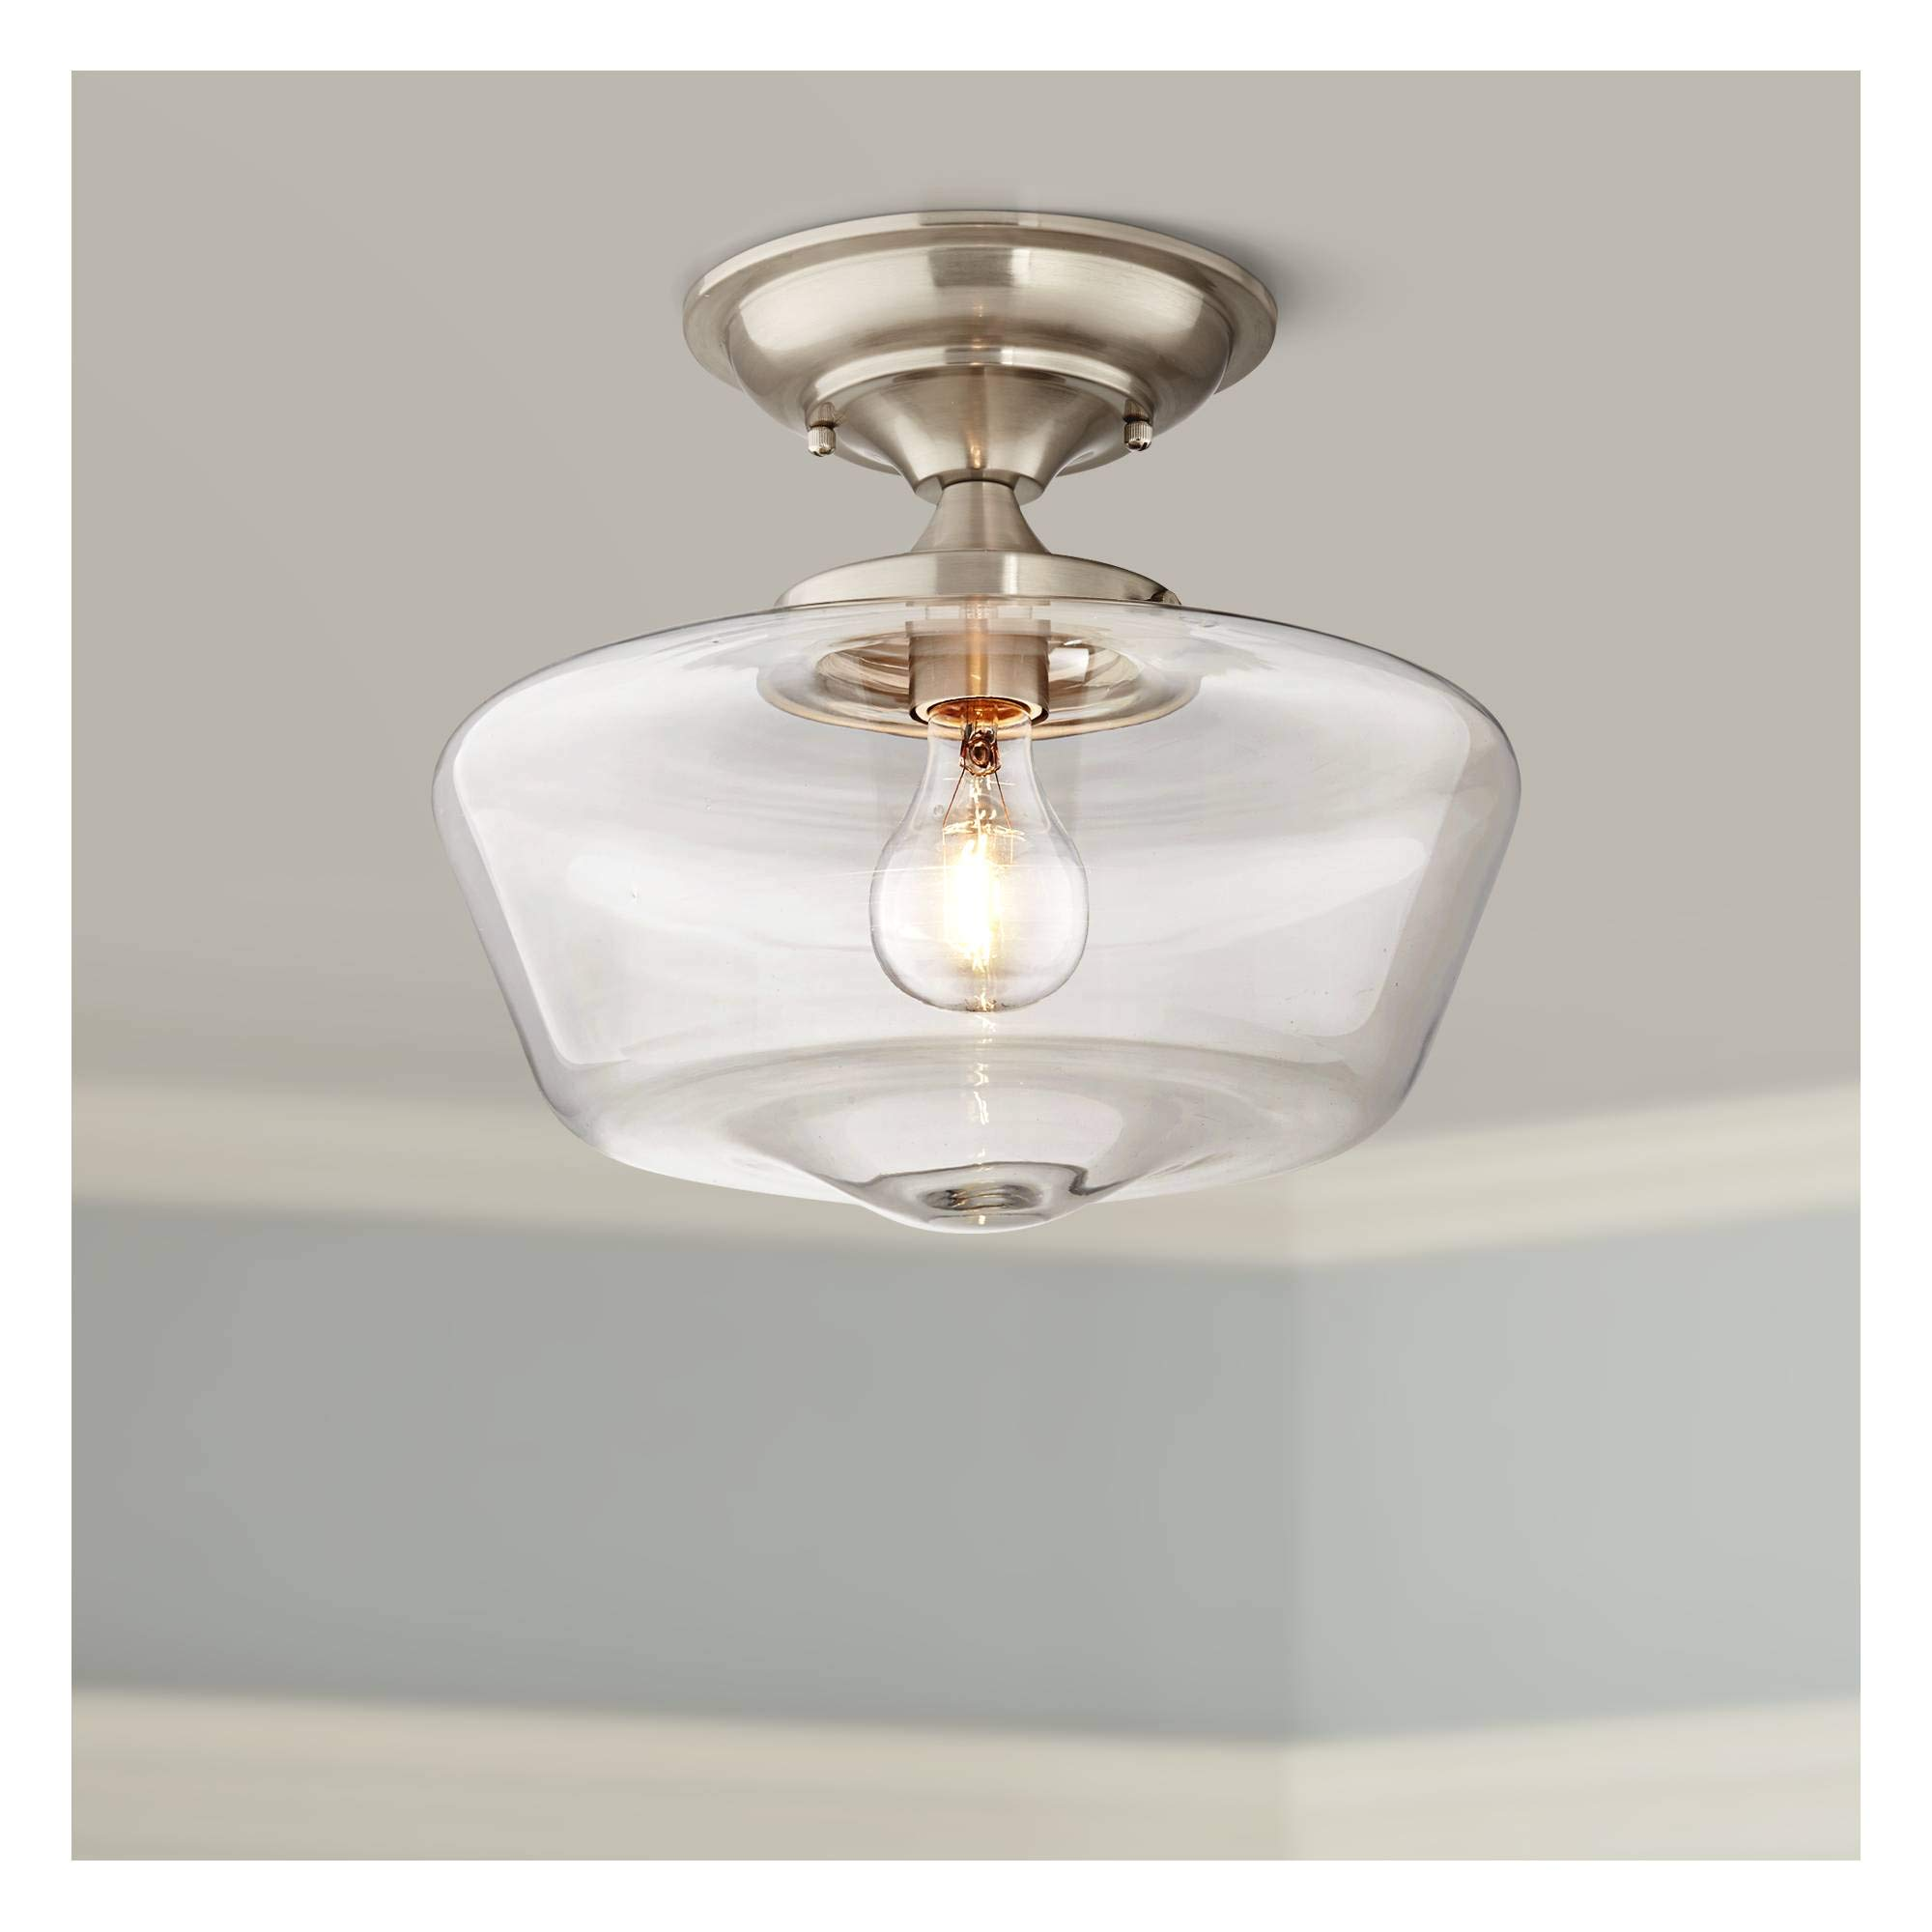 Schoolhouse Floating Ceiling Light Semi Flush Mount Fixture Brushed Nickel 12'' Wide Clear Glass for Bedroom Kitchen Living Room Hallway Bathroom - Regency Hill